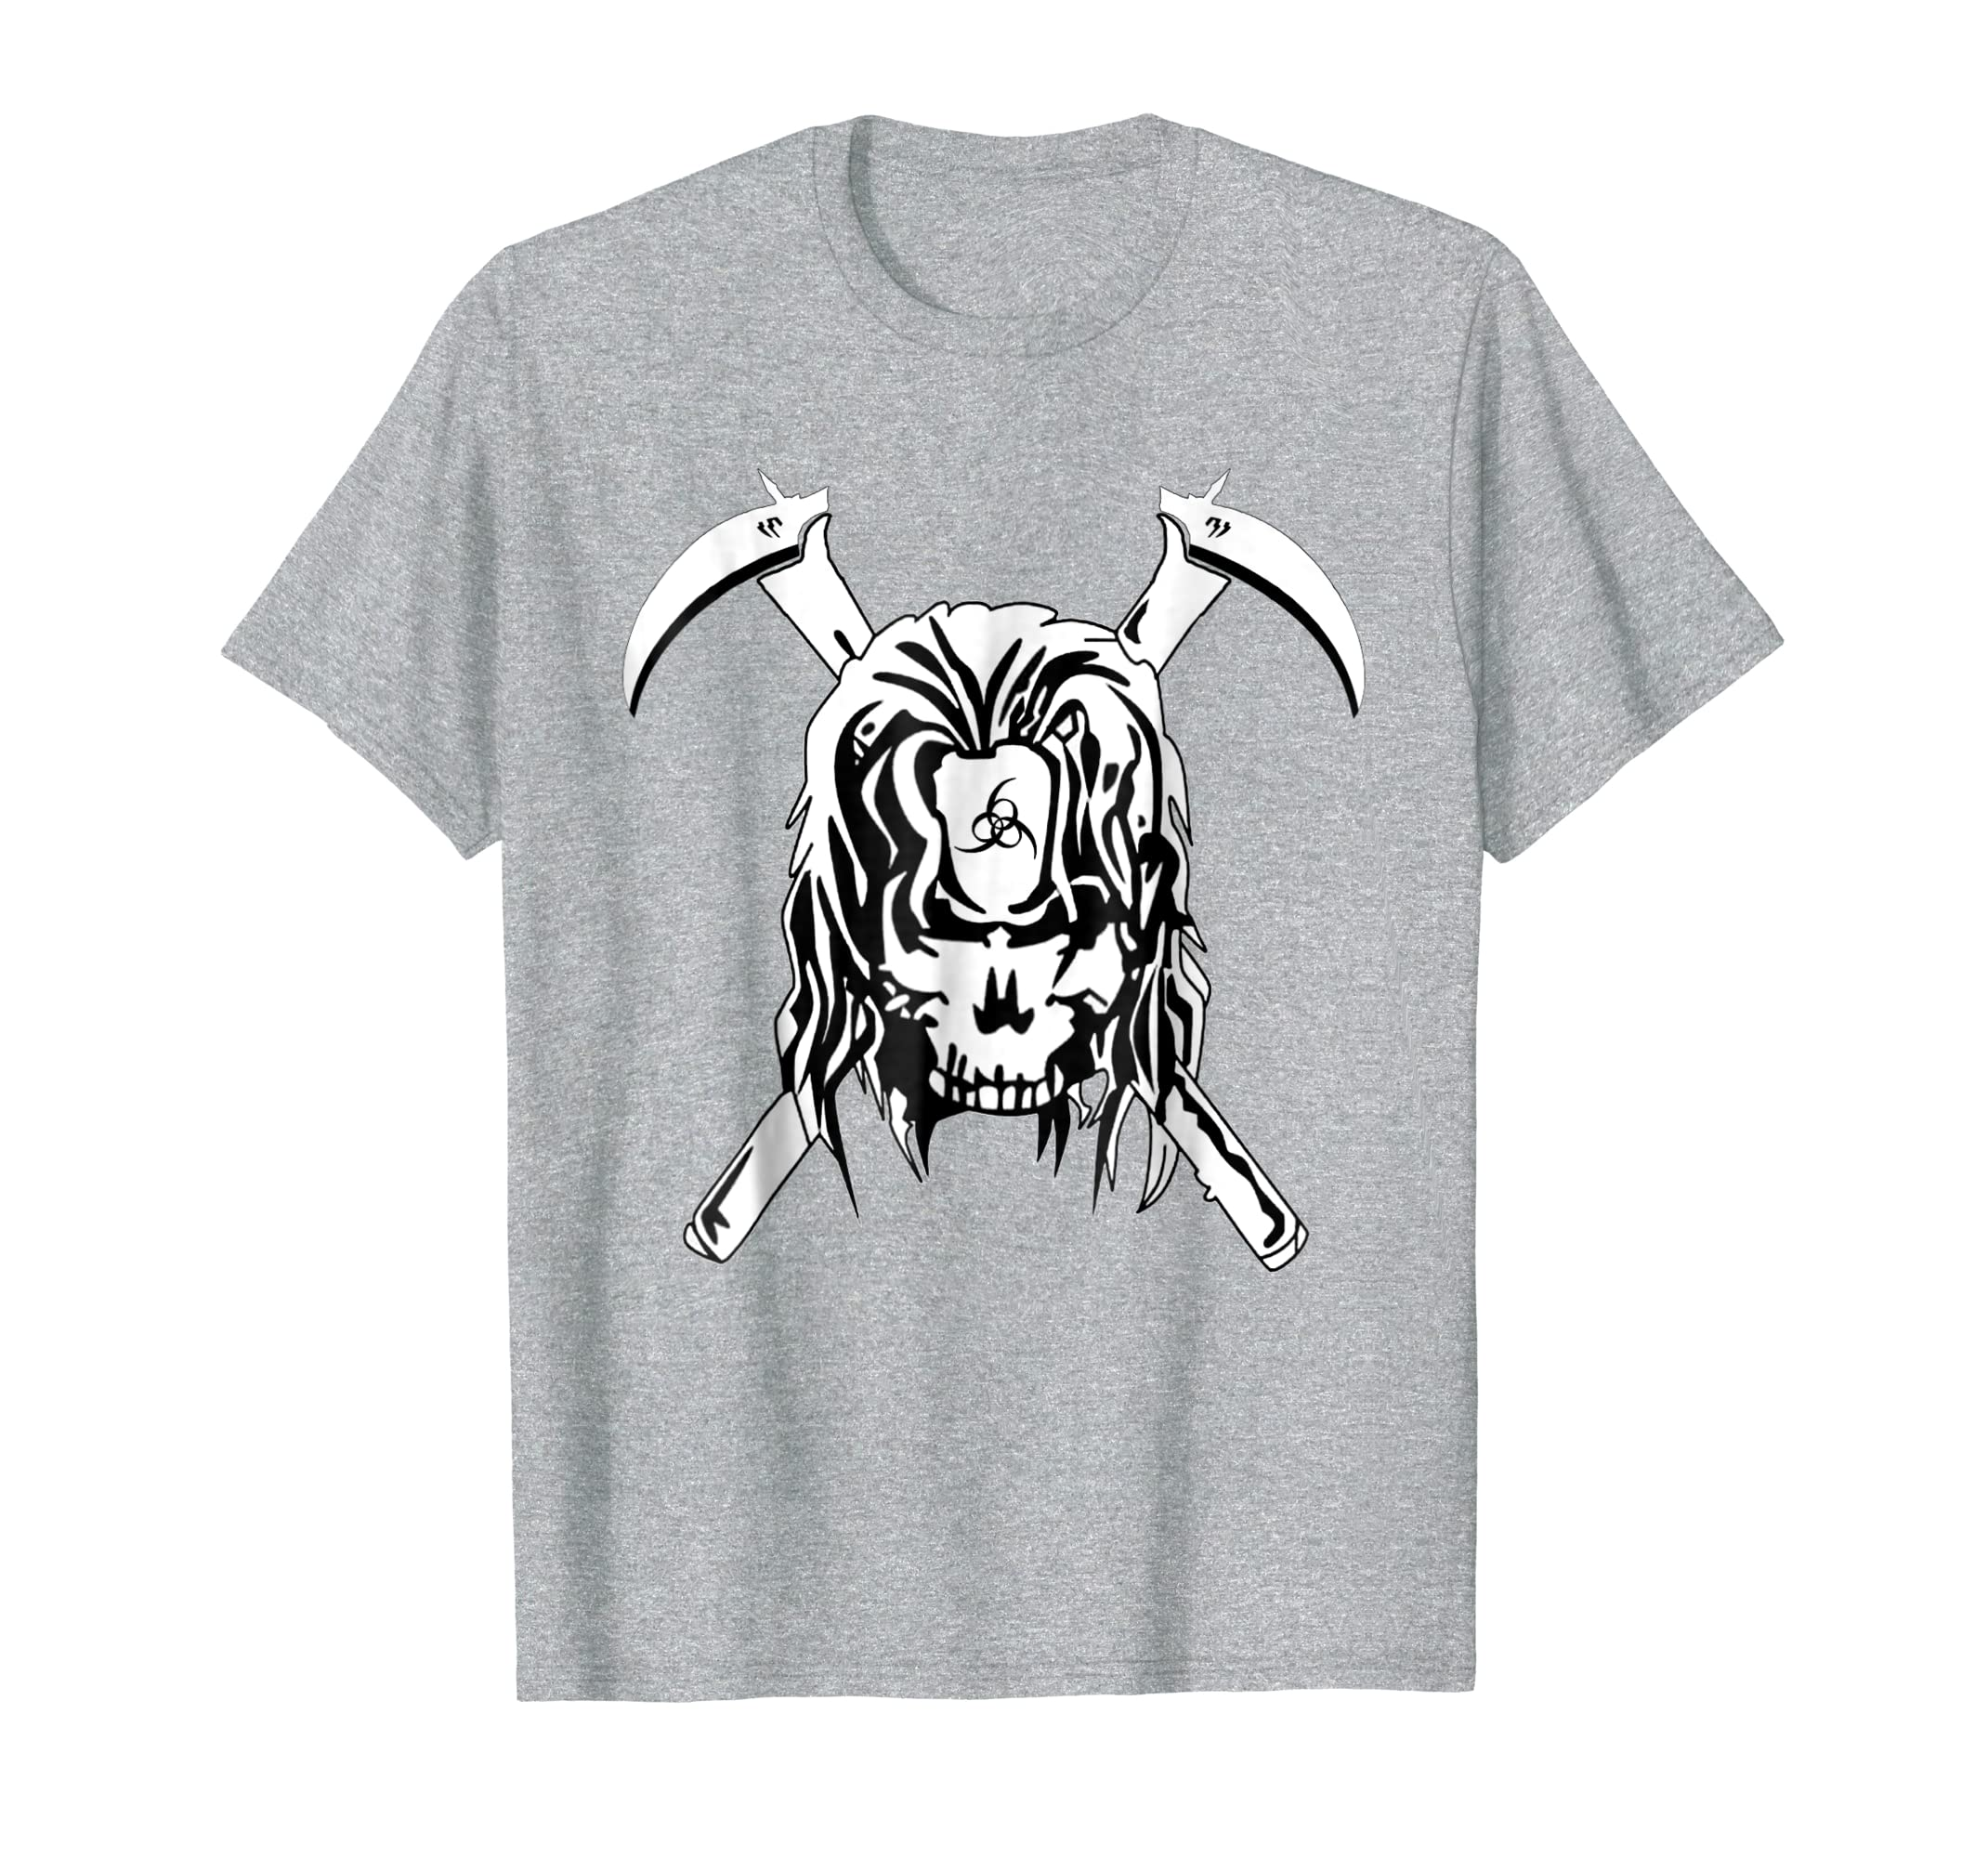 Amazon.com: Feel-ink Skull Death Warrior Sickle Scythe Halloween T-shirt: Clothing